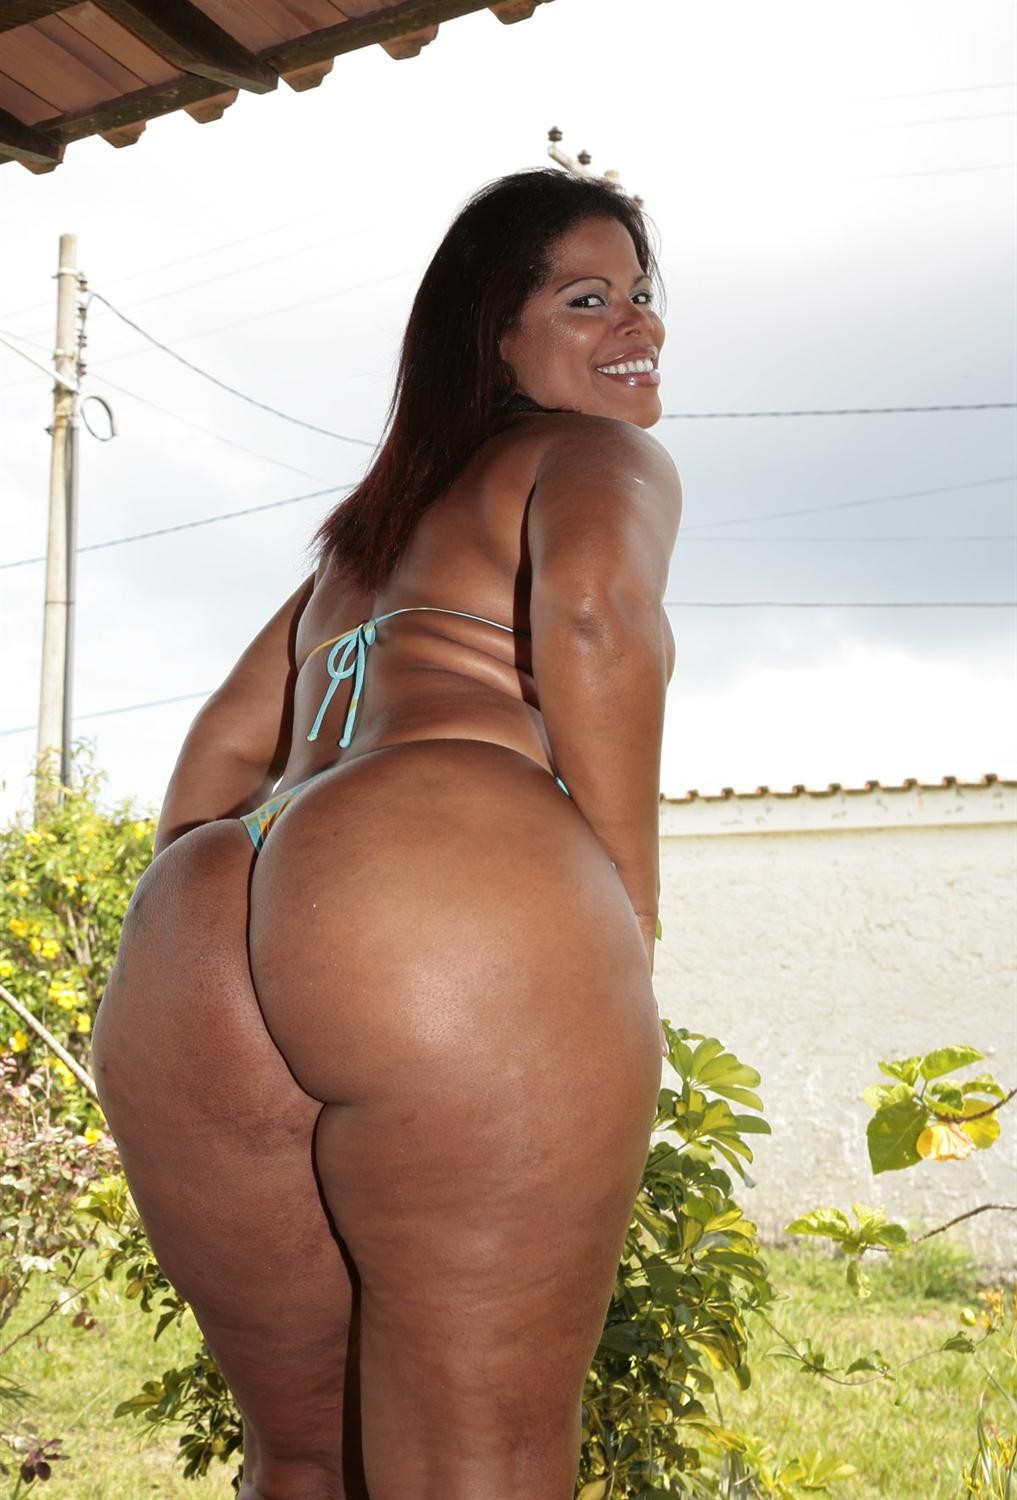 Big ass brazil woman